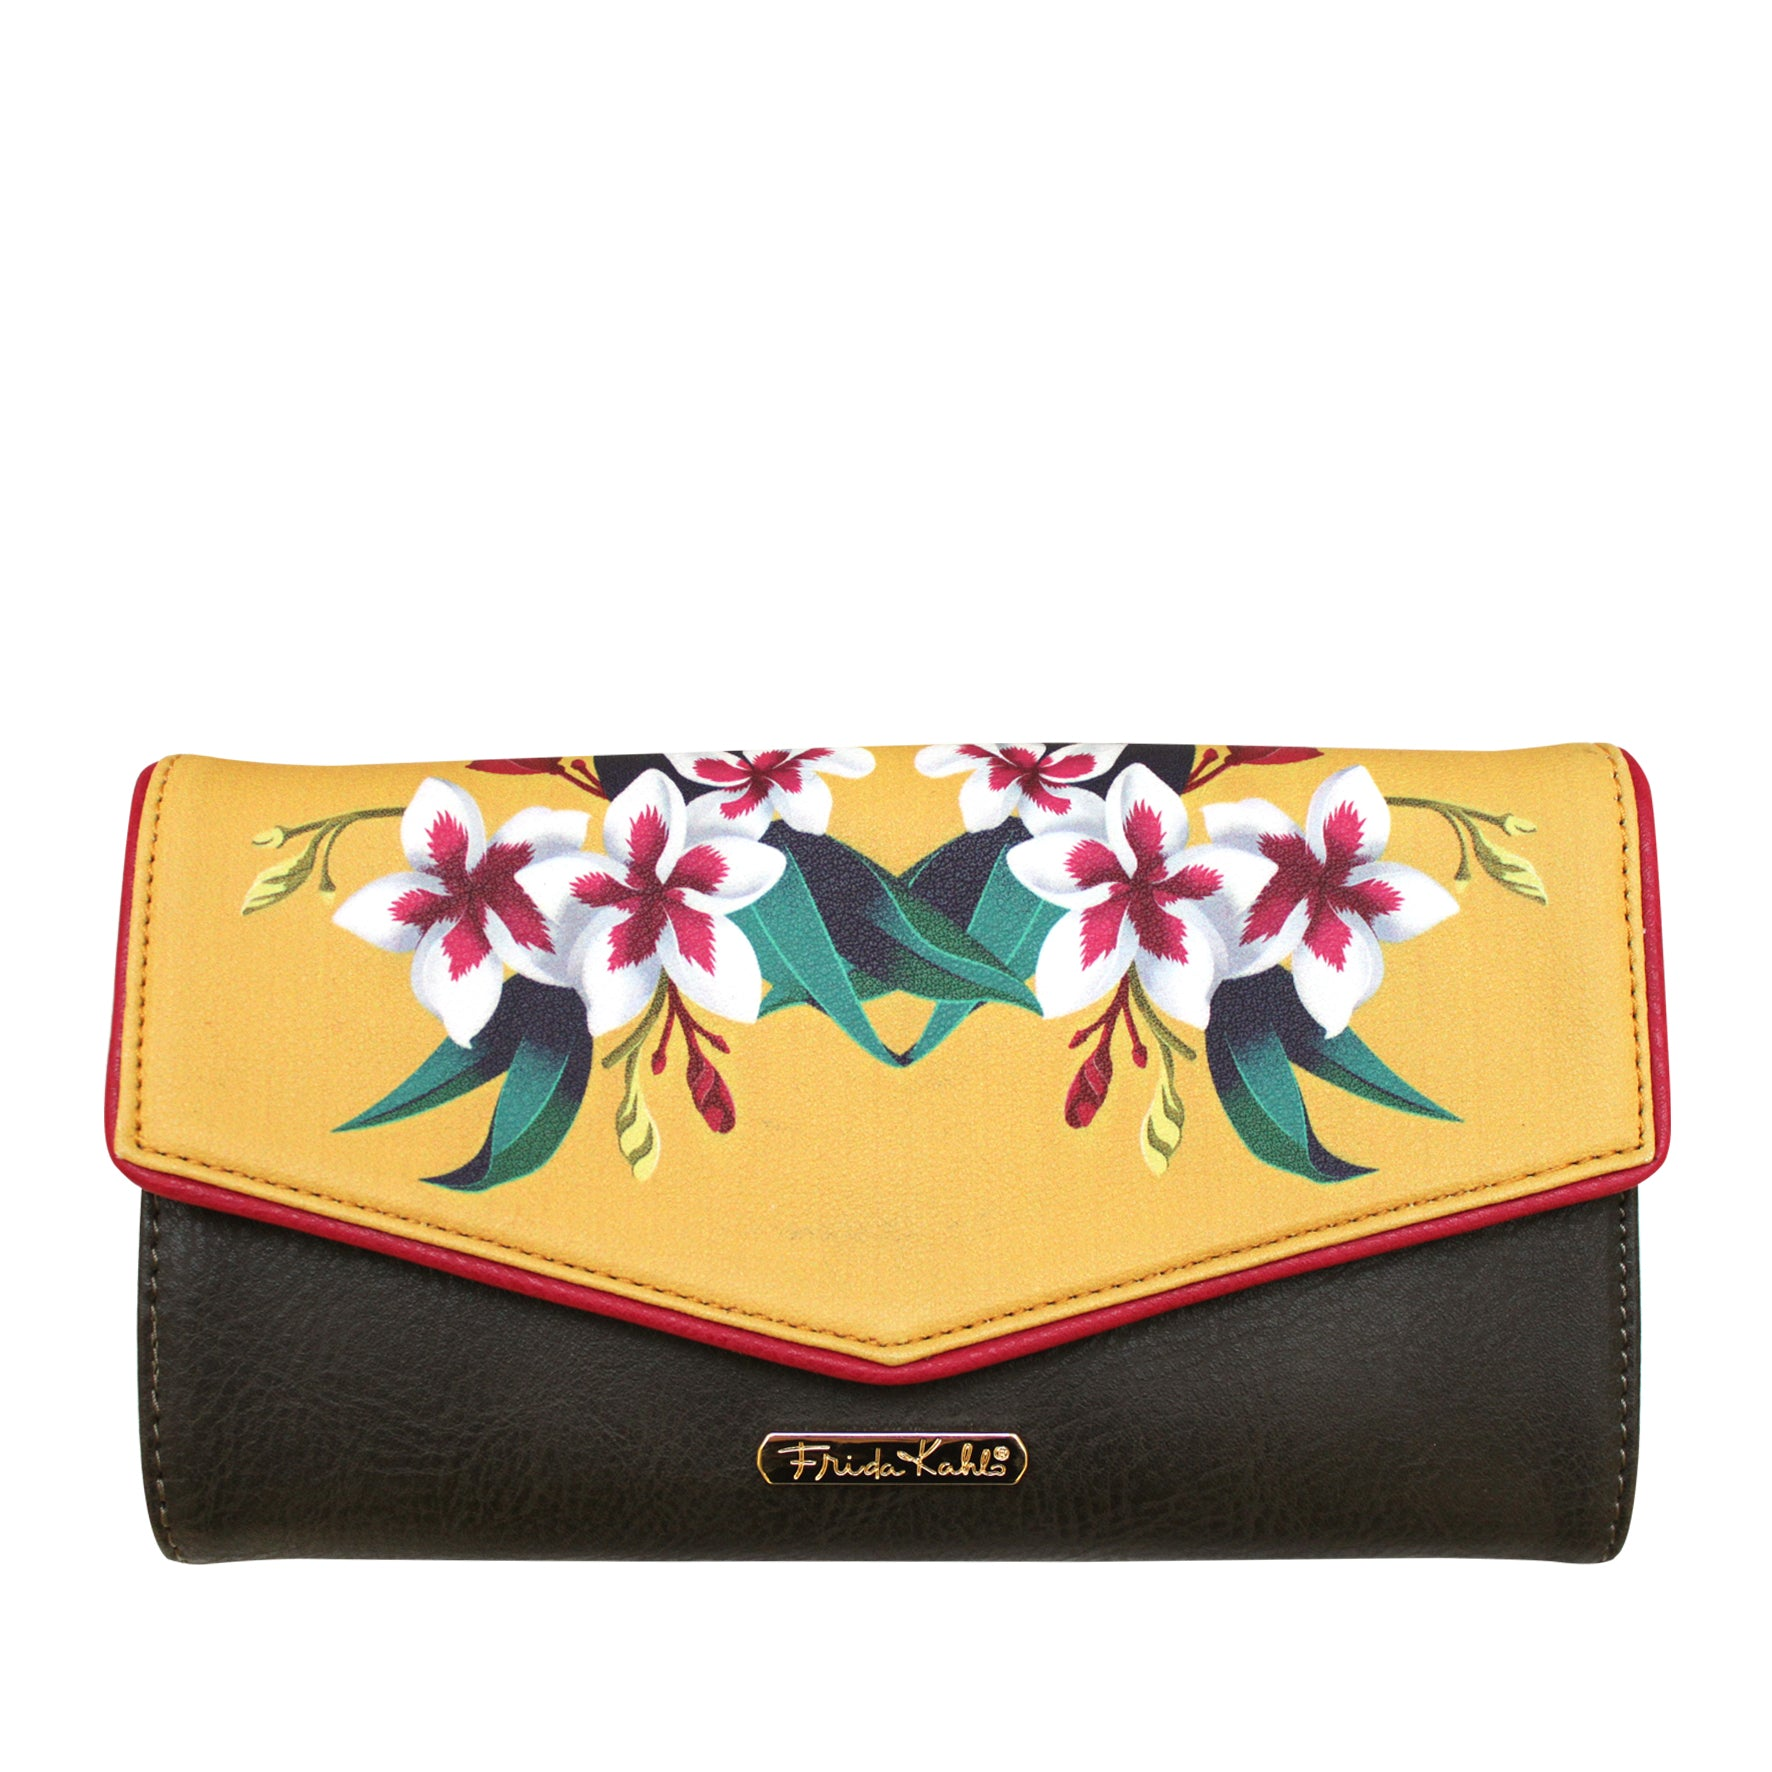 Disaster Designs Frida Kahlo - Wallet